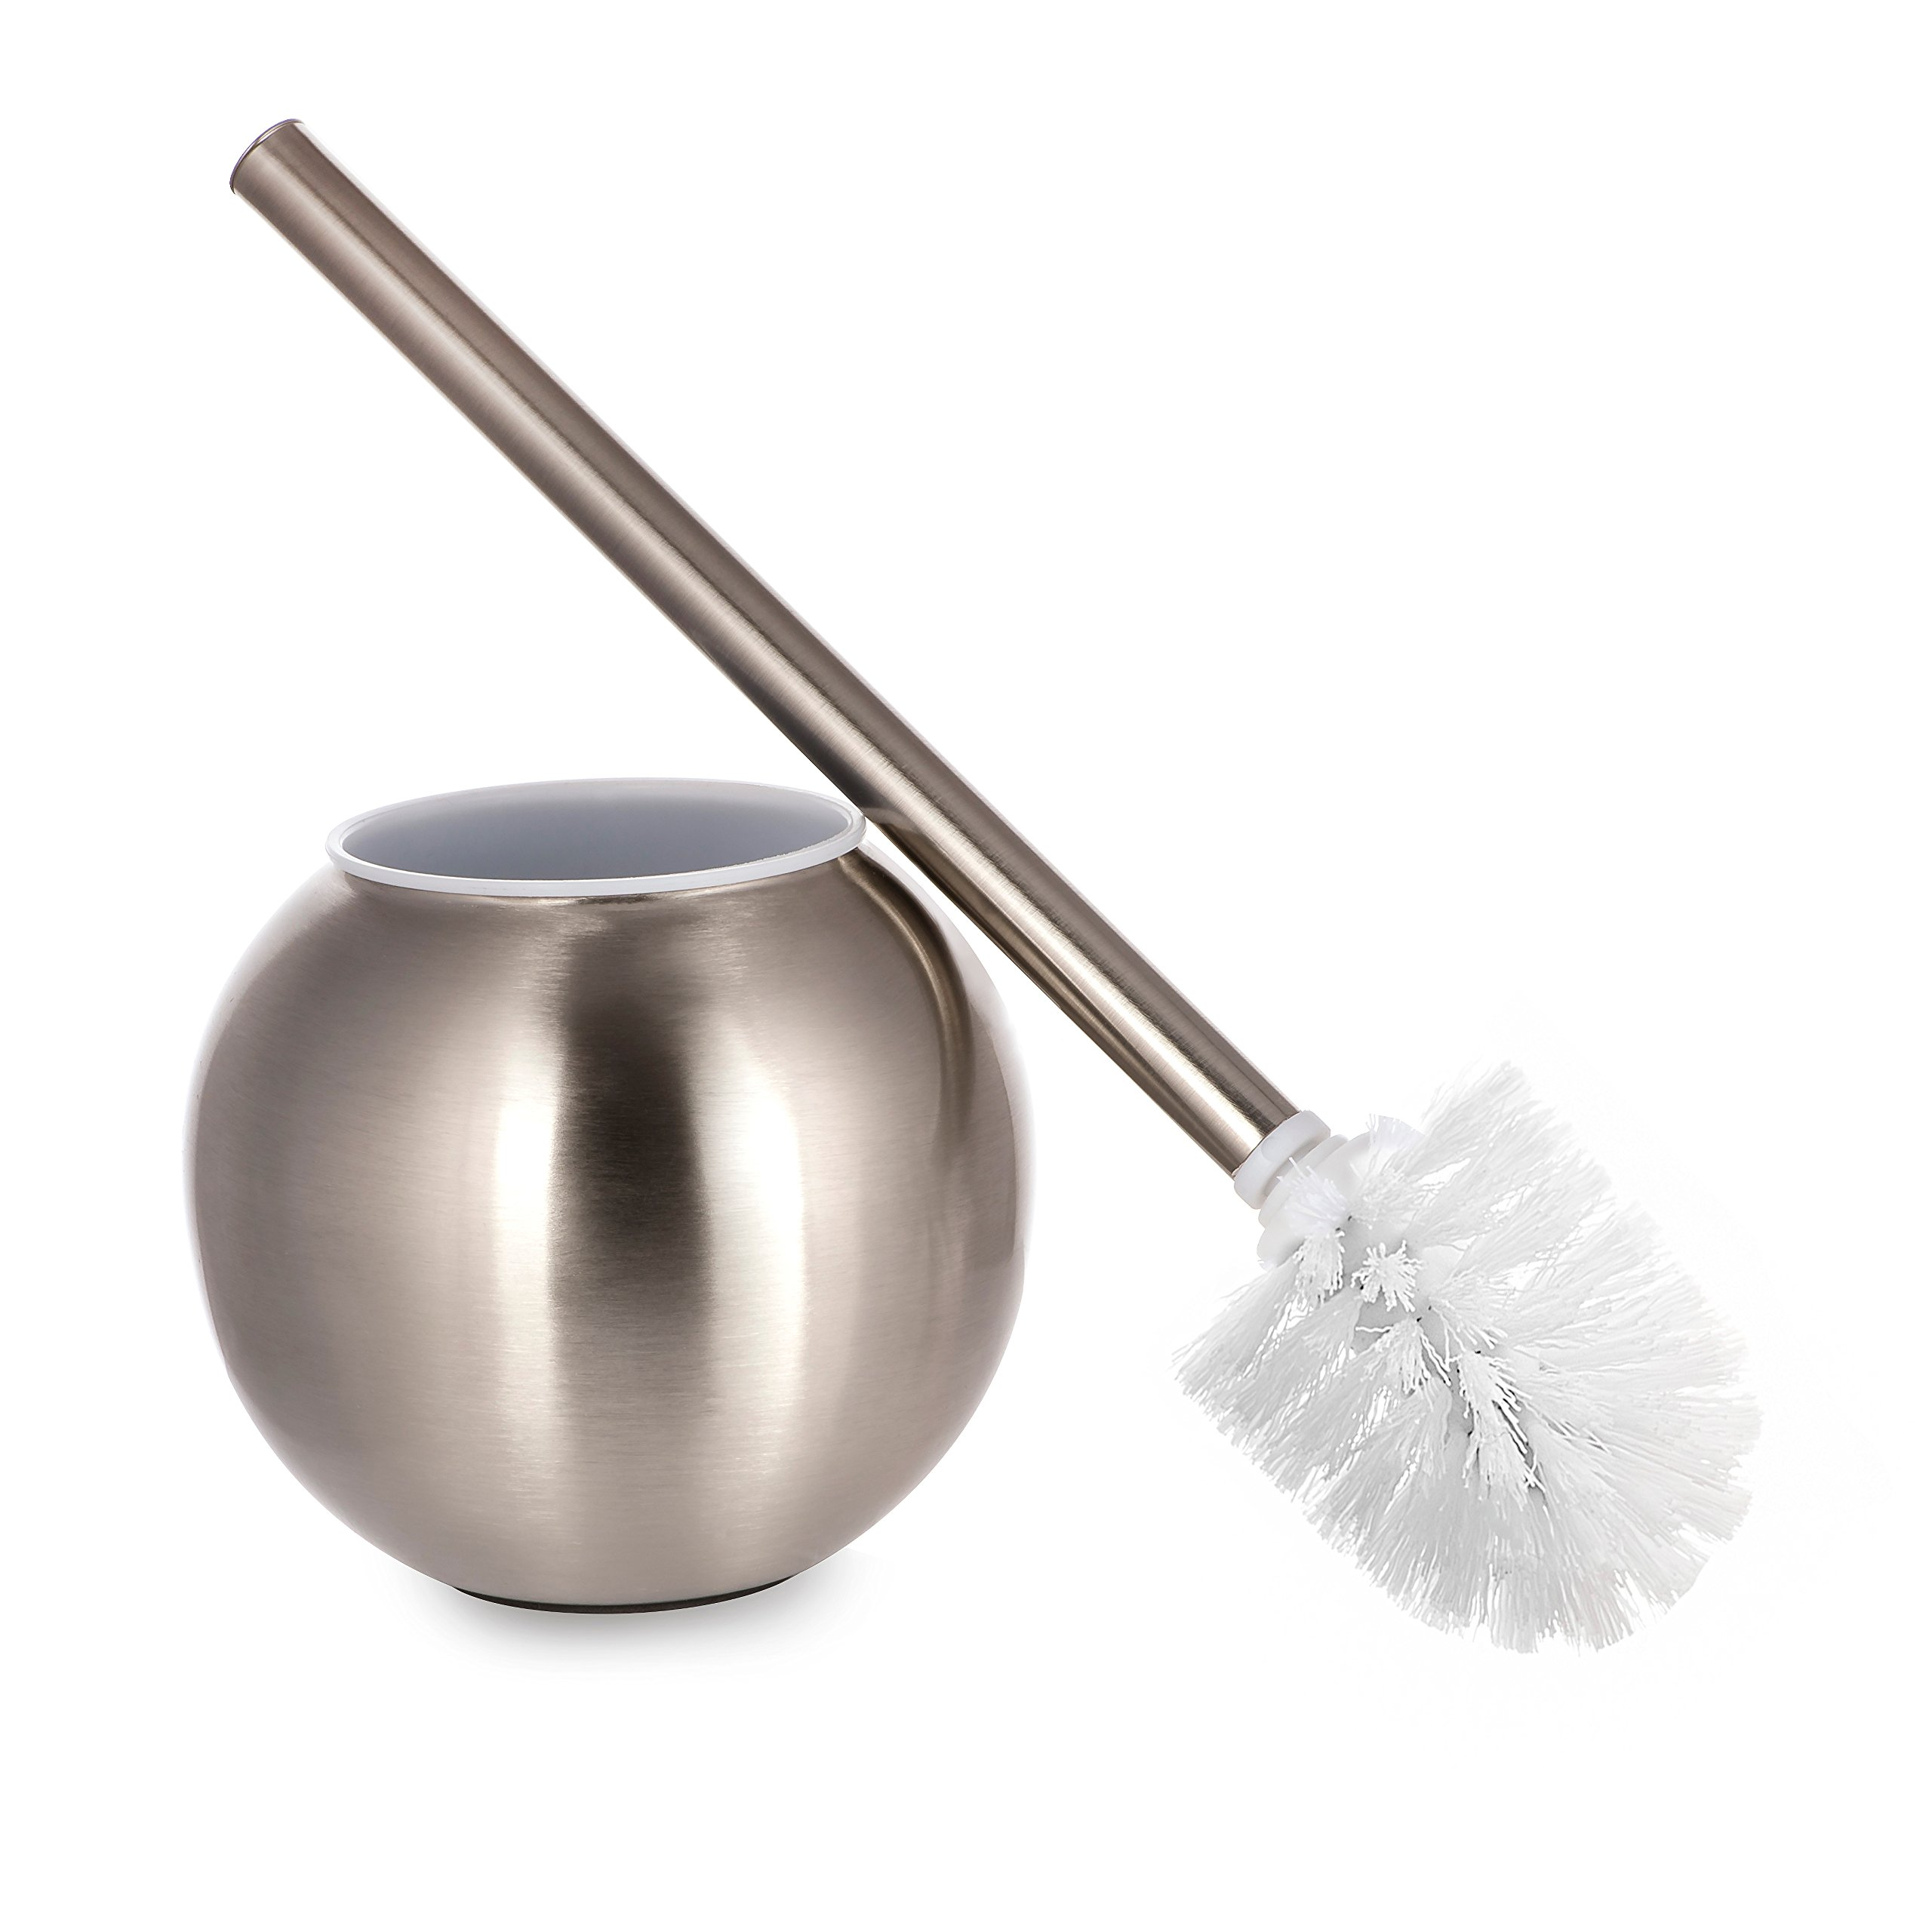 AMG and Enchante Accessories, Toilet Brush and Ball Holder, TB100001 SNI, Satin Nickel